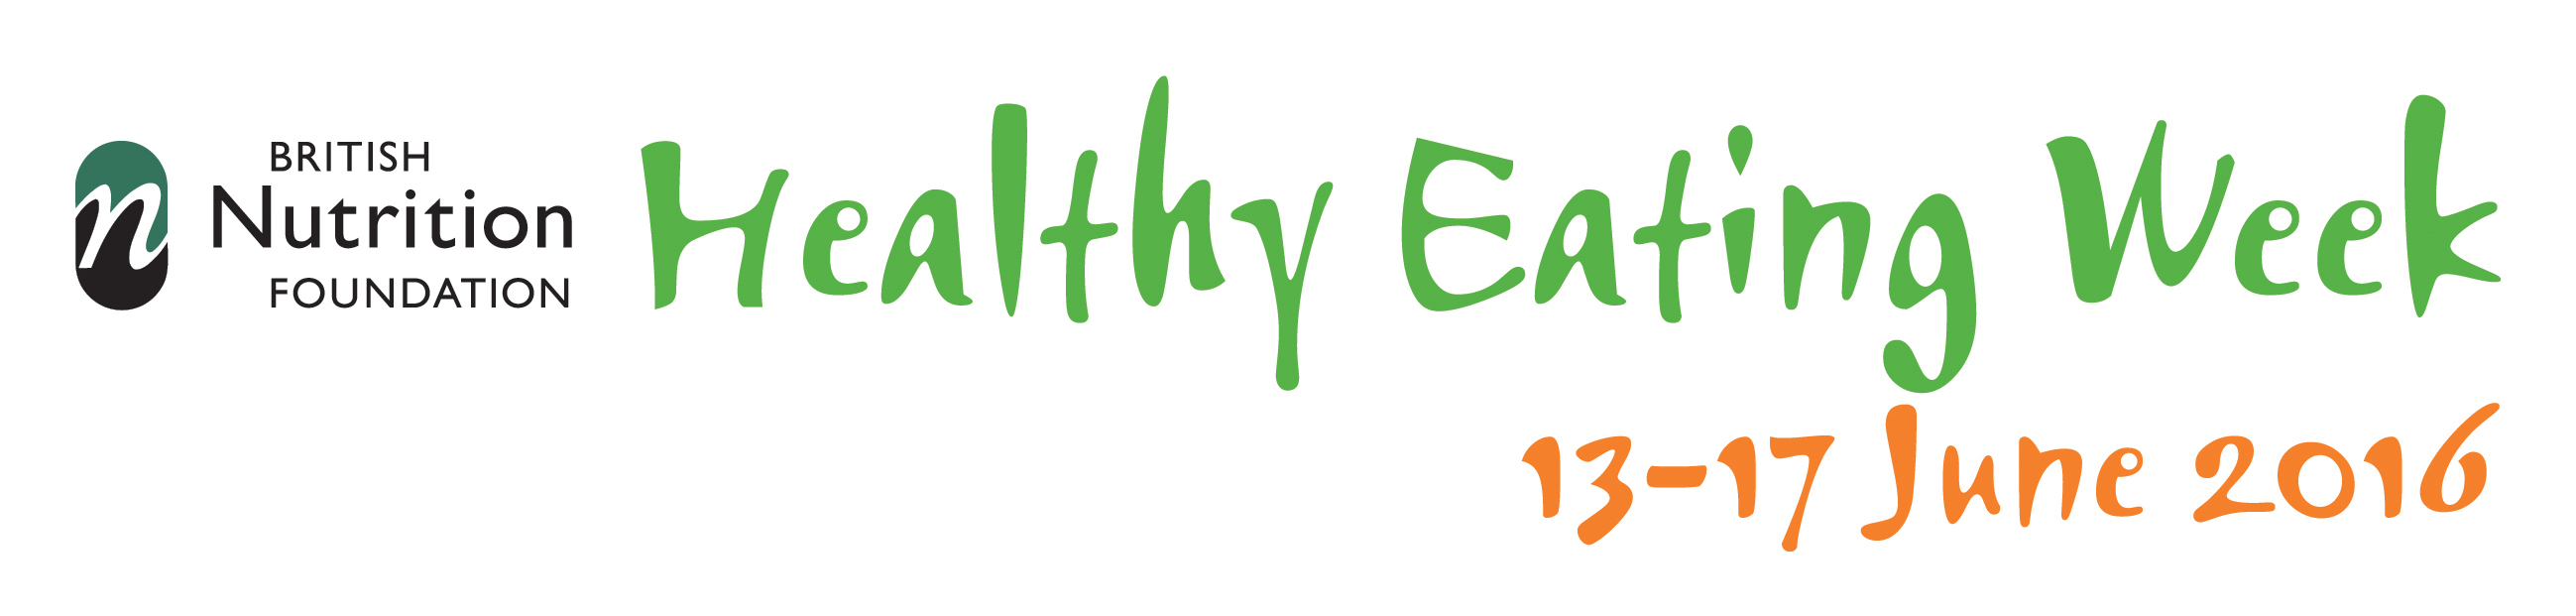 Healthy Eating Week Logo Welsh